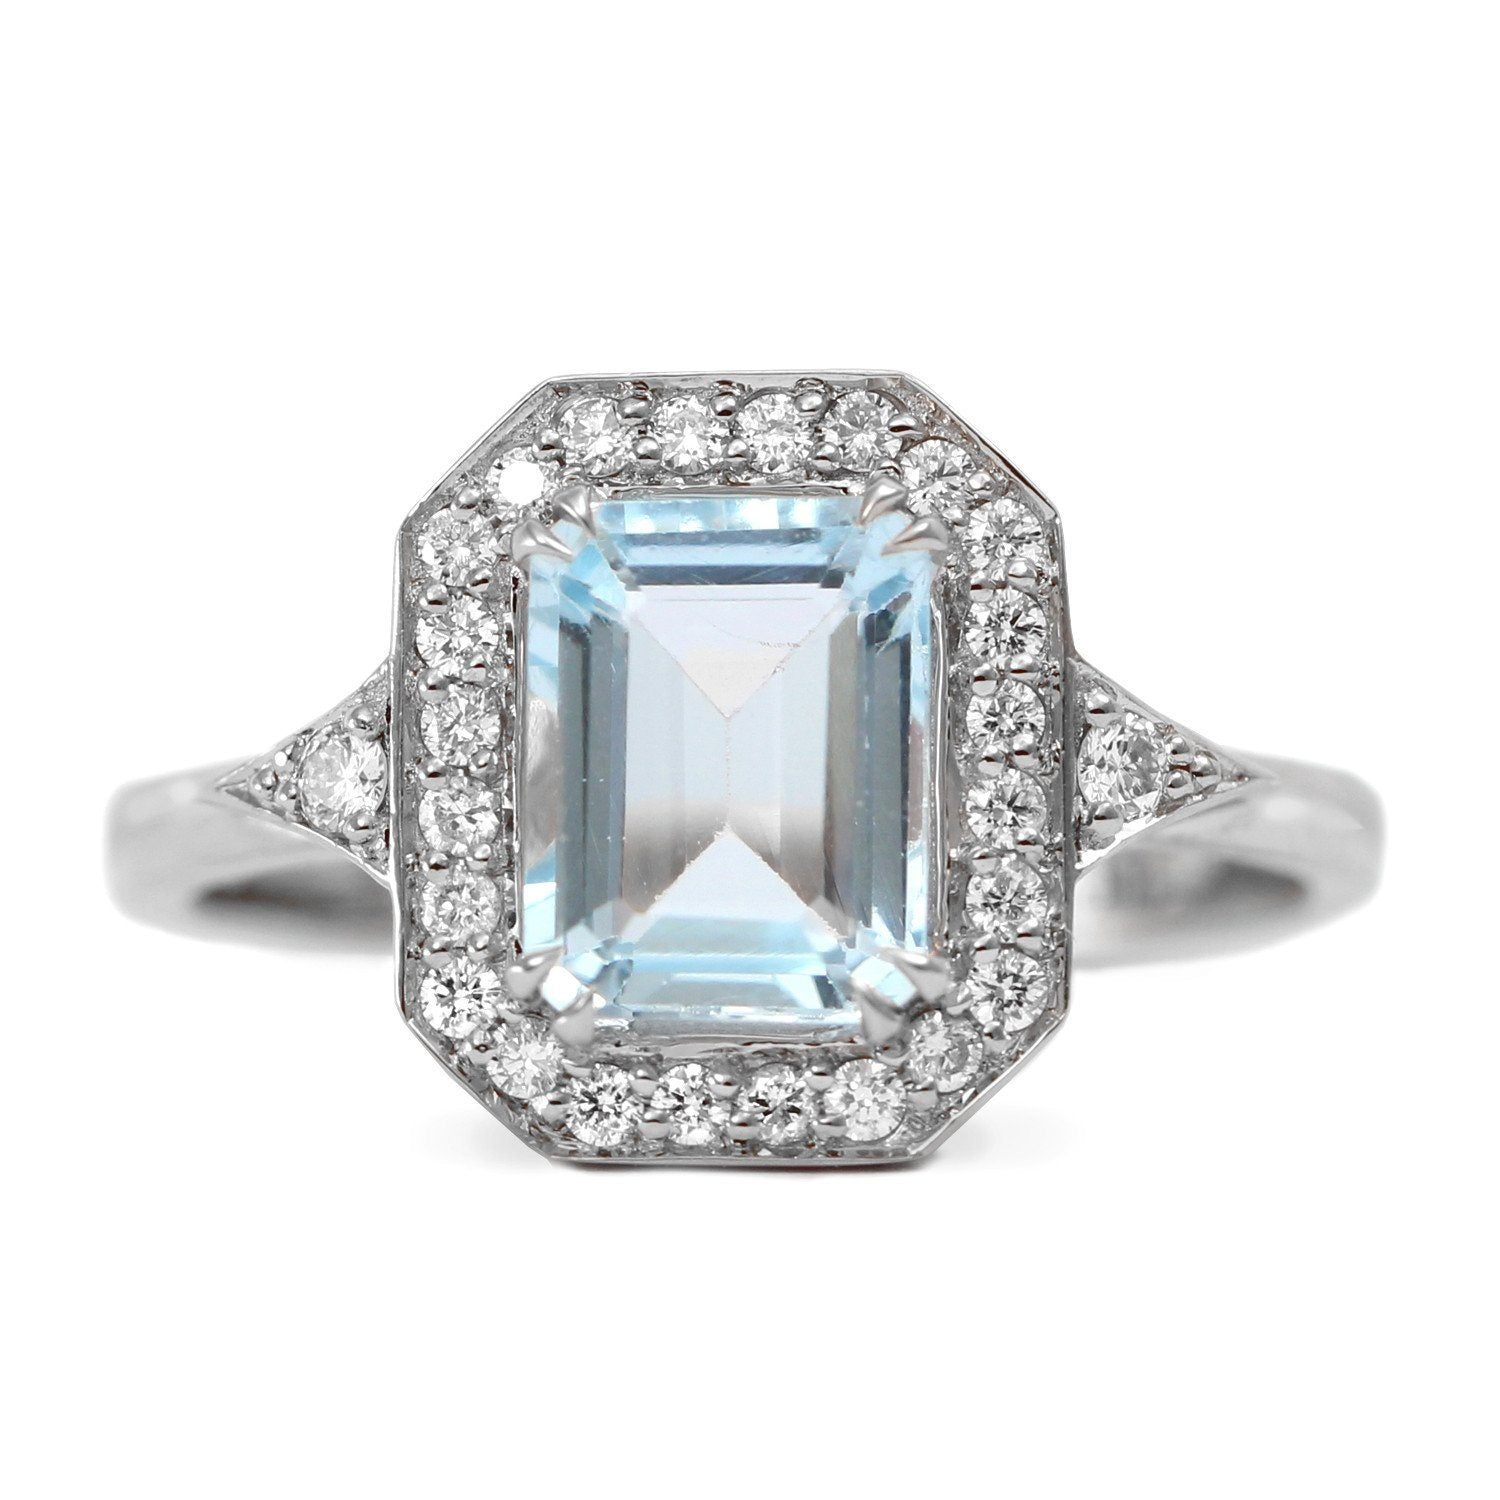 white gold halo ring with large aquamarine